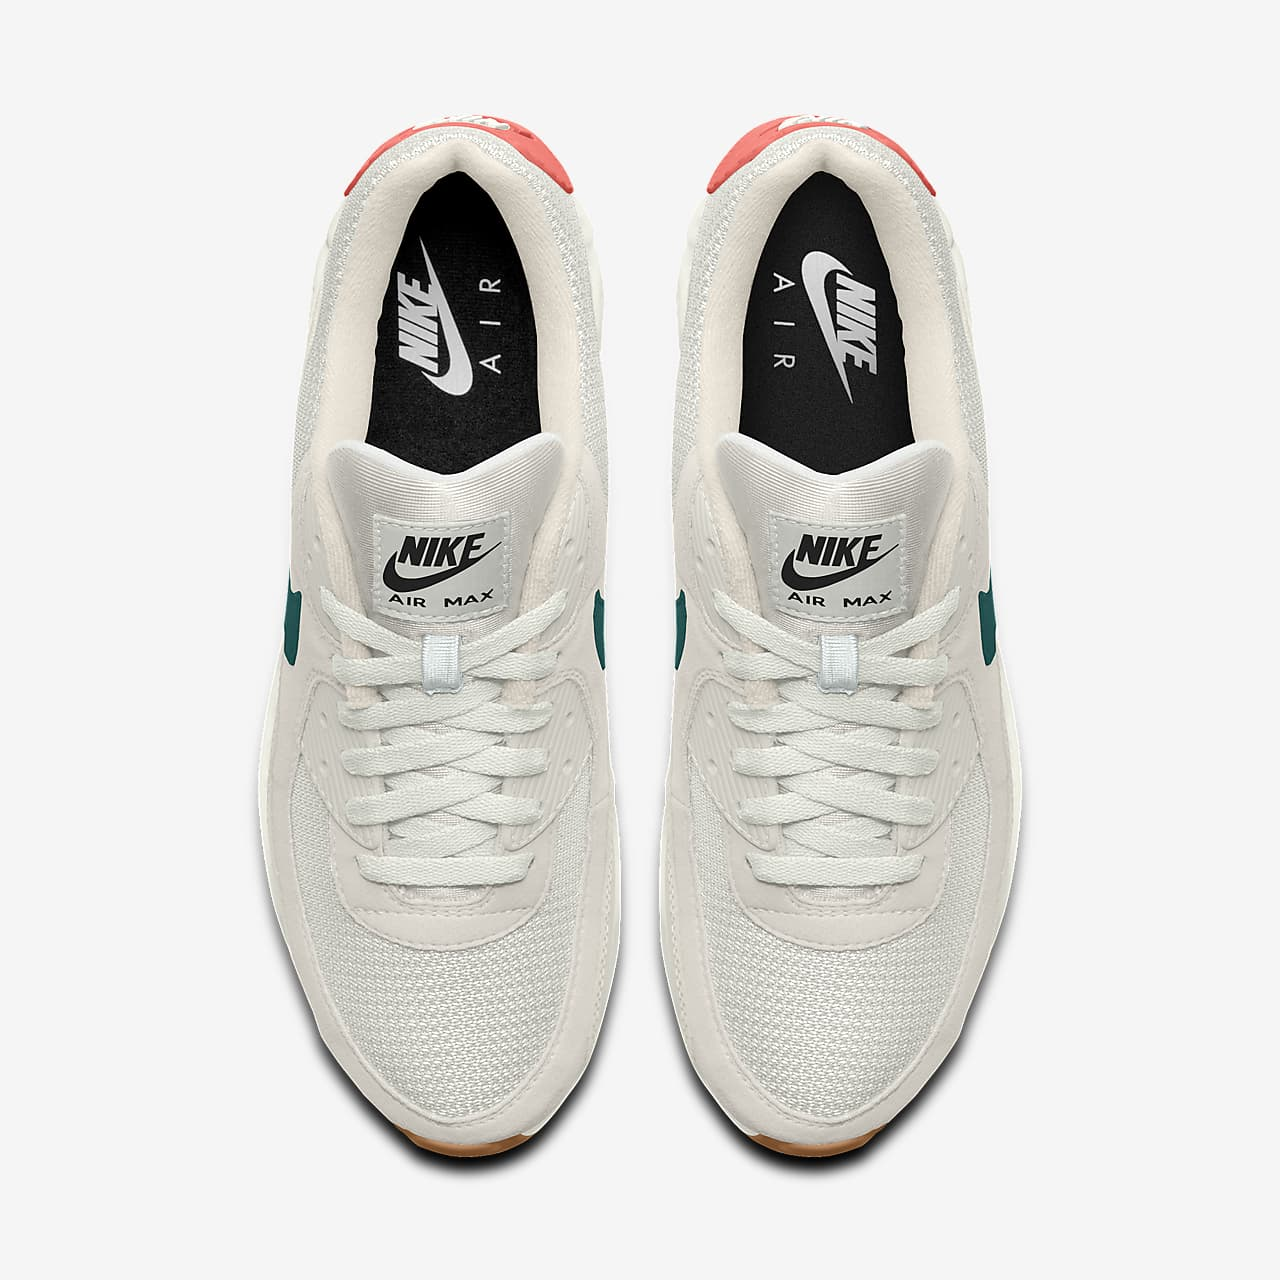 Chaussure personnalisable Nike Air Max 90 By You pour Femme